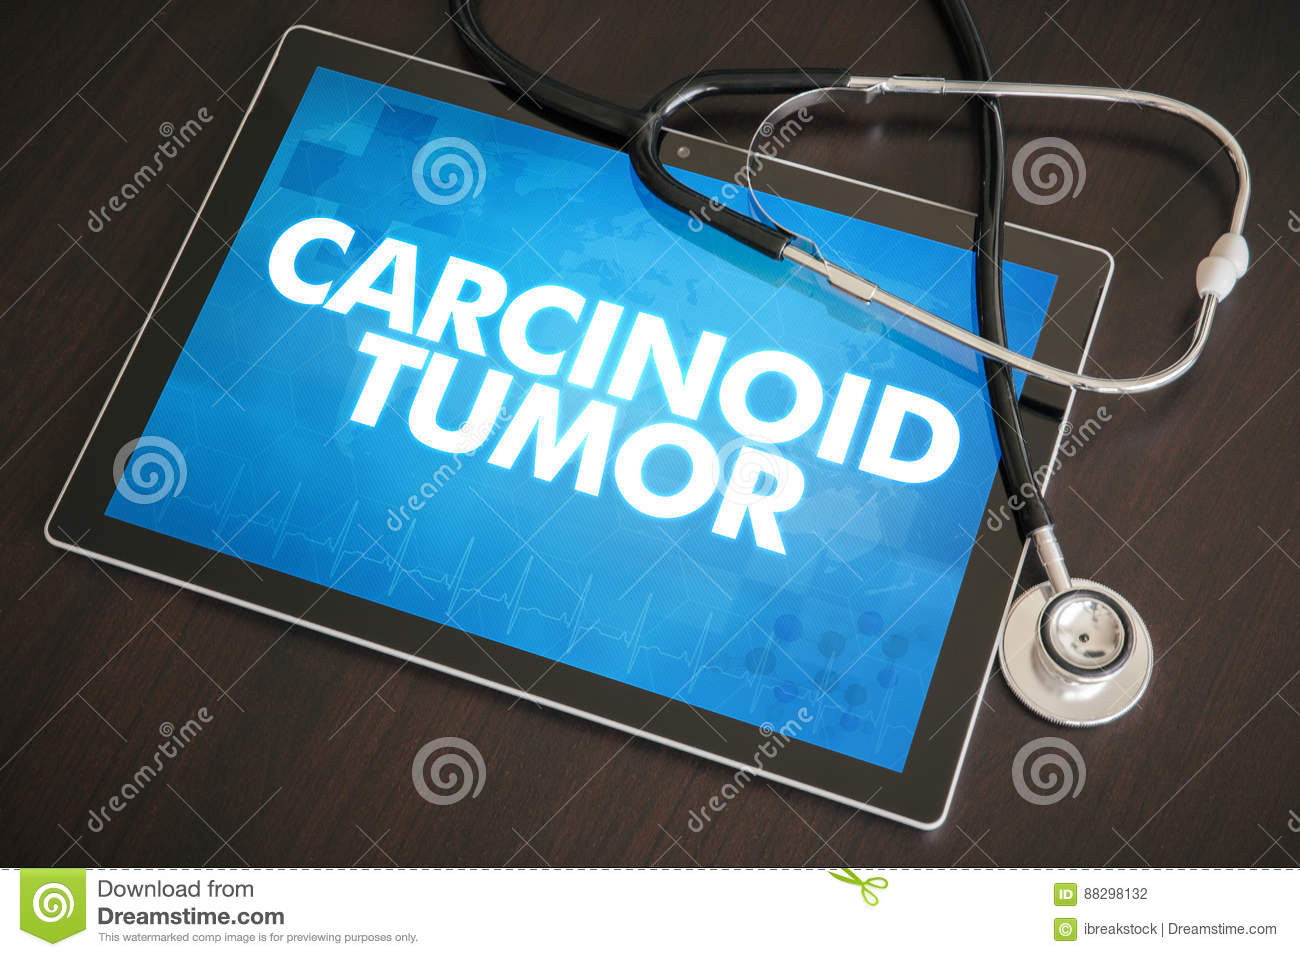 Carcinoid tumor (cancer related) diagnosis medical concept on ta